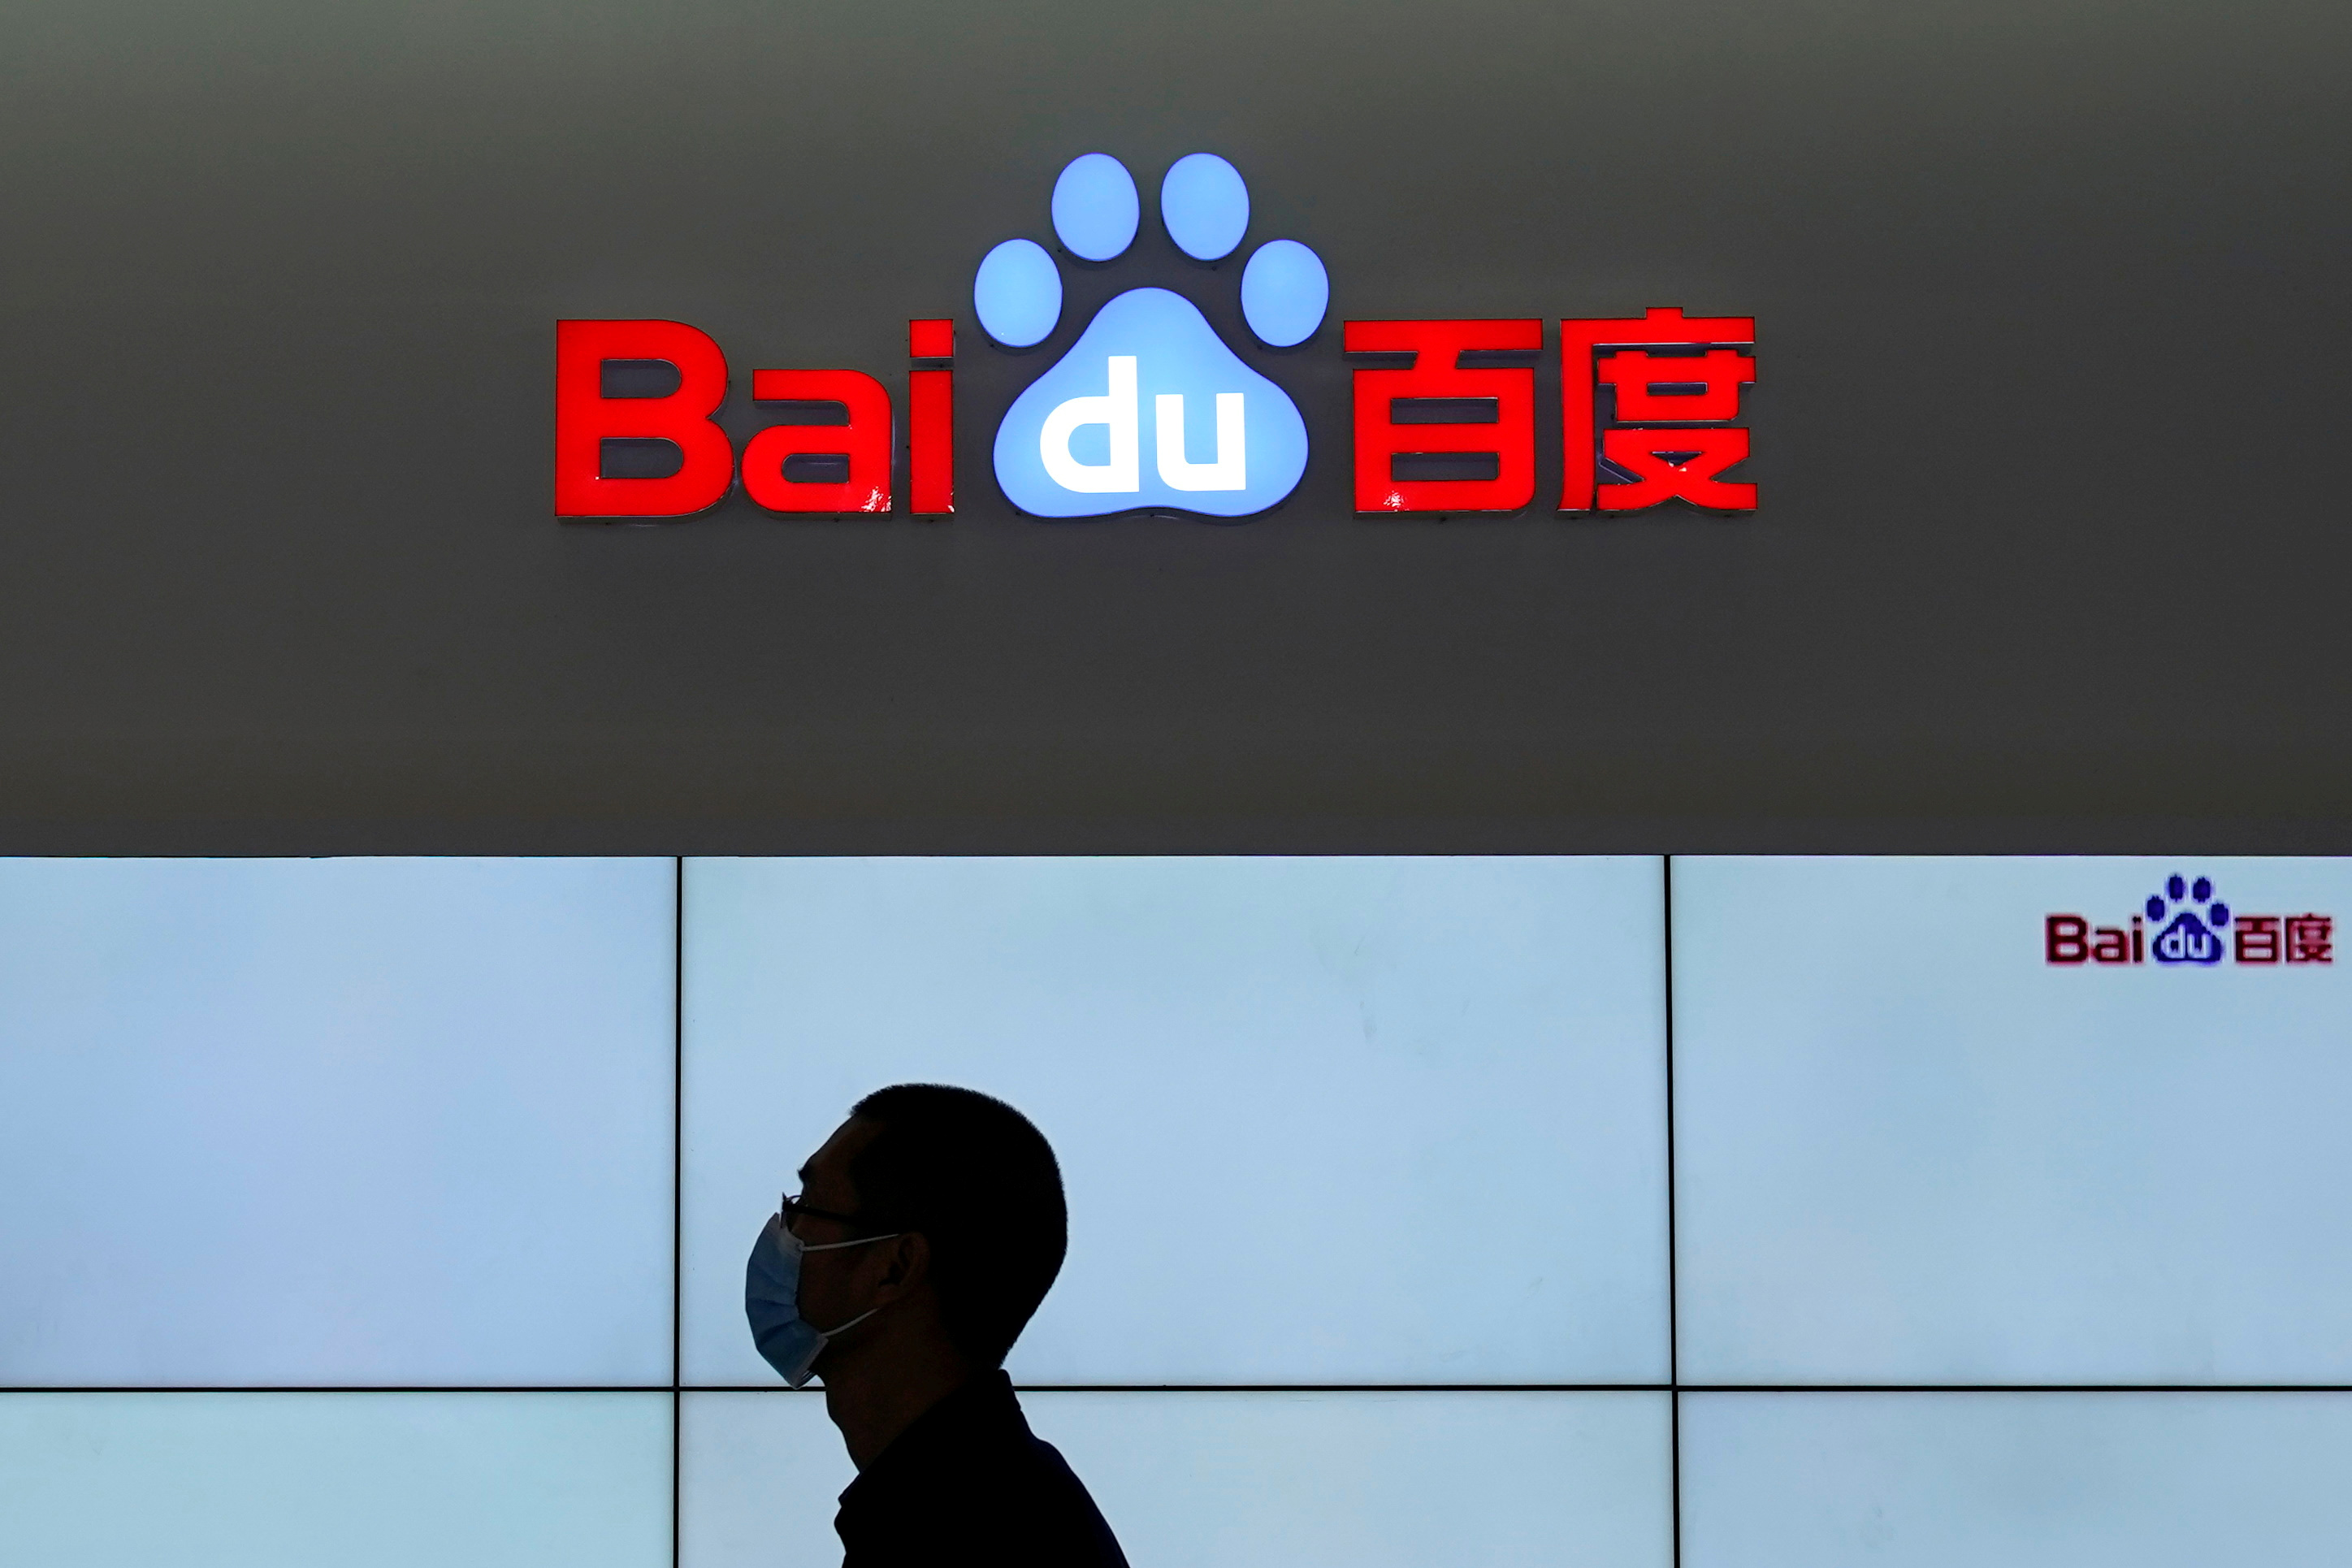 A logo of Baidu is seen during the World Internet Conference (WIC) in Wuzhen, Zhejiang province, China, November 23, 2020. REUTERS/Aly Song/File Photo